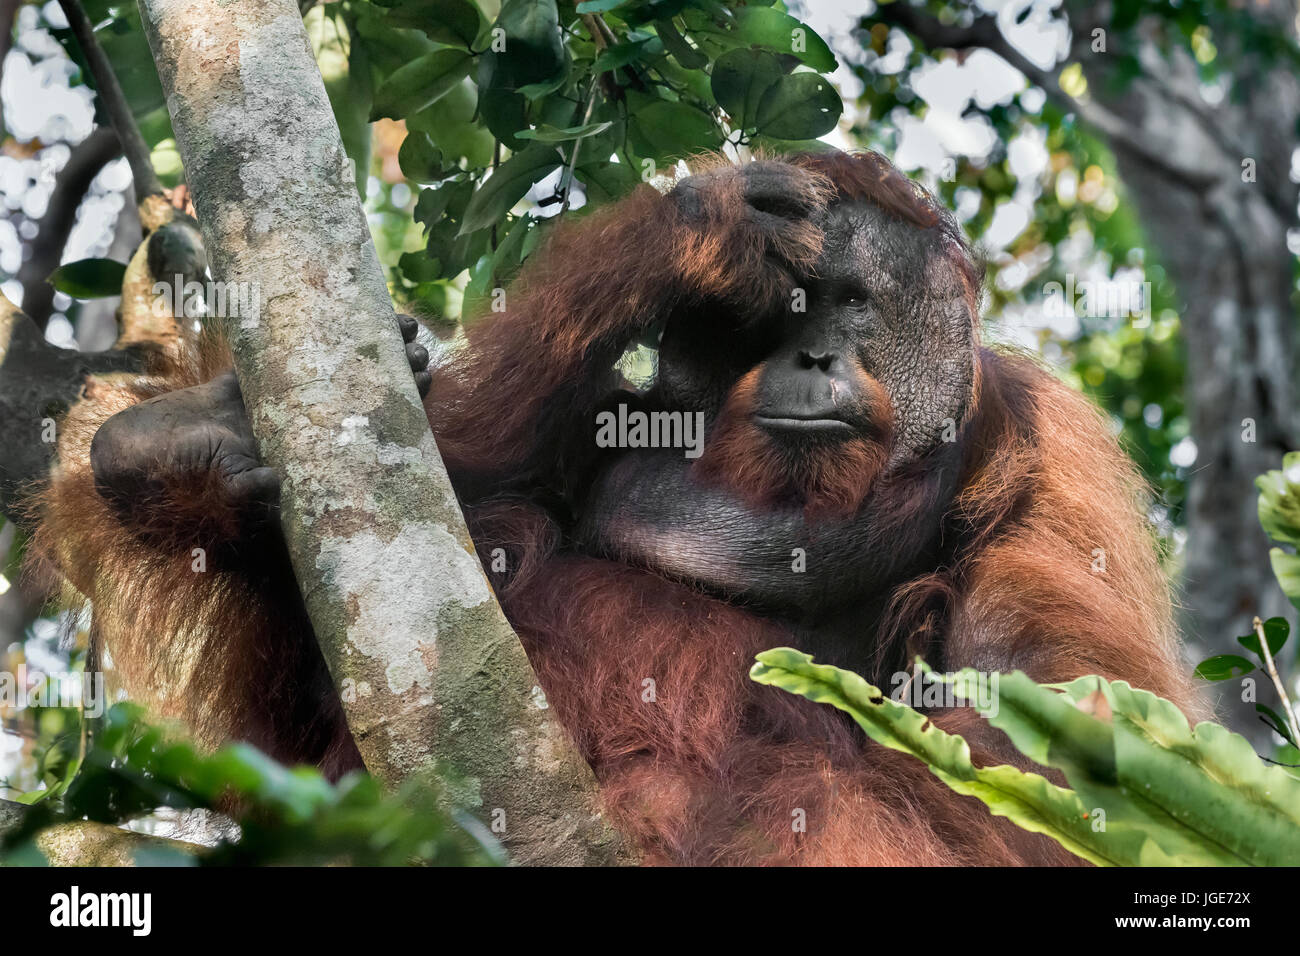 Flanged male orangutan in the forest, Tanjung Puting National Park, Kalimantan, Indonesia - Stock Image